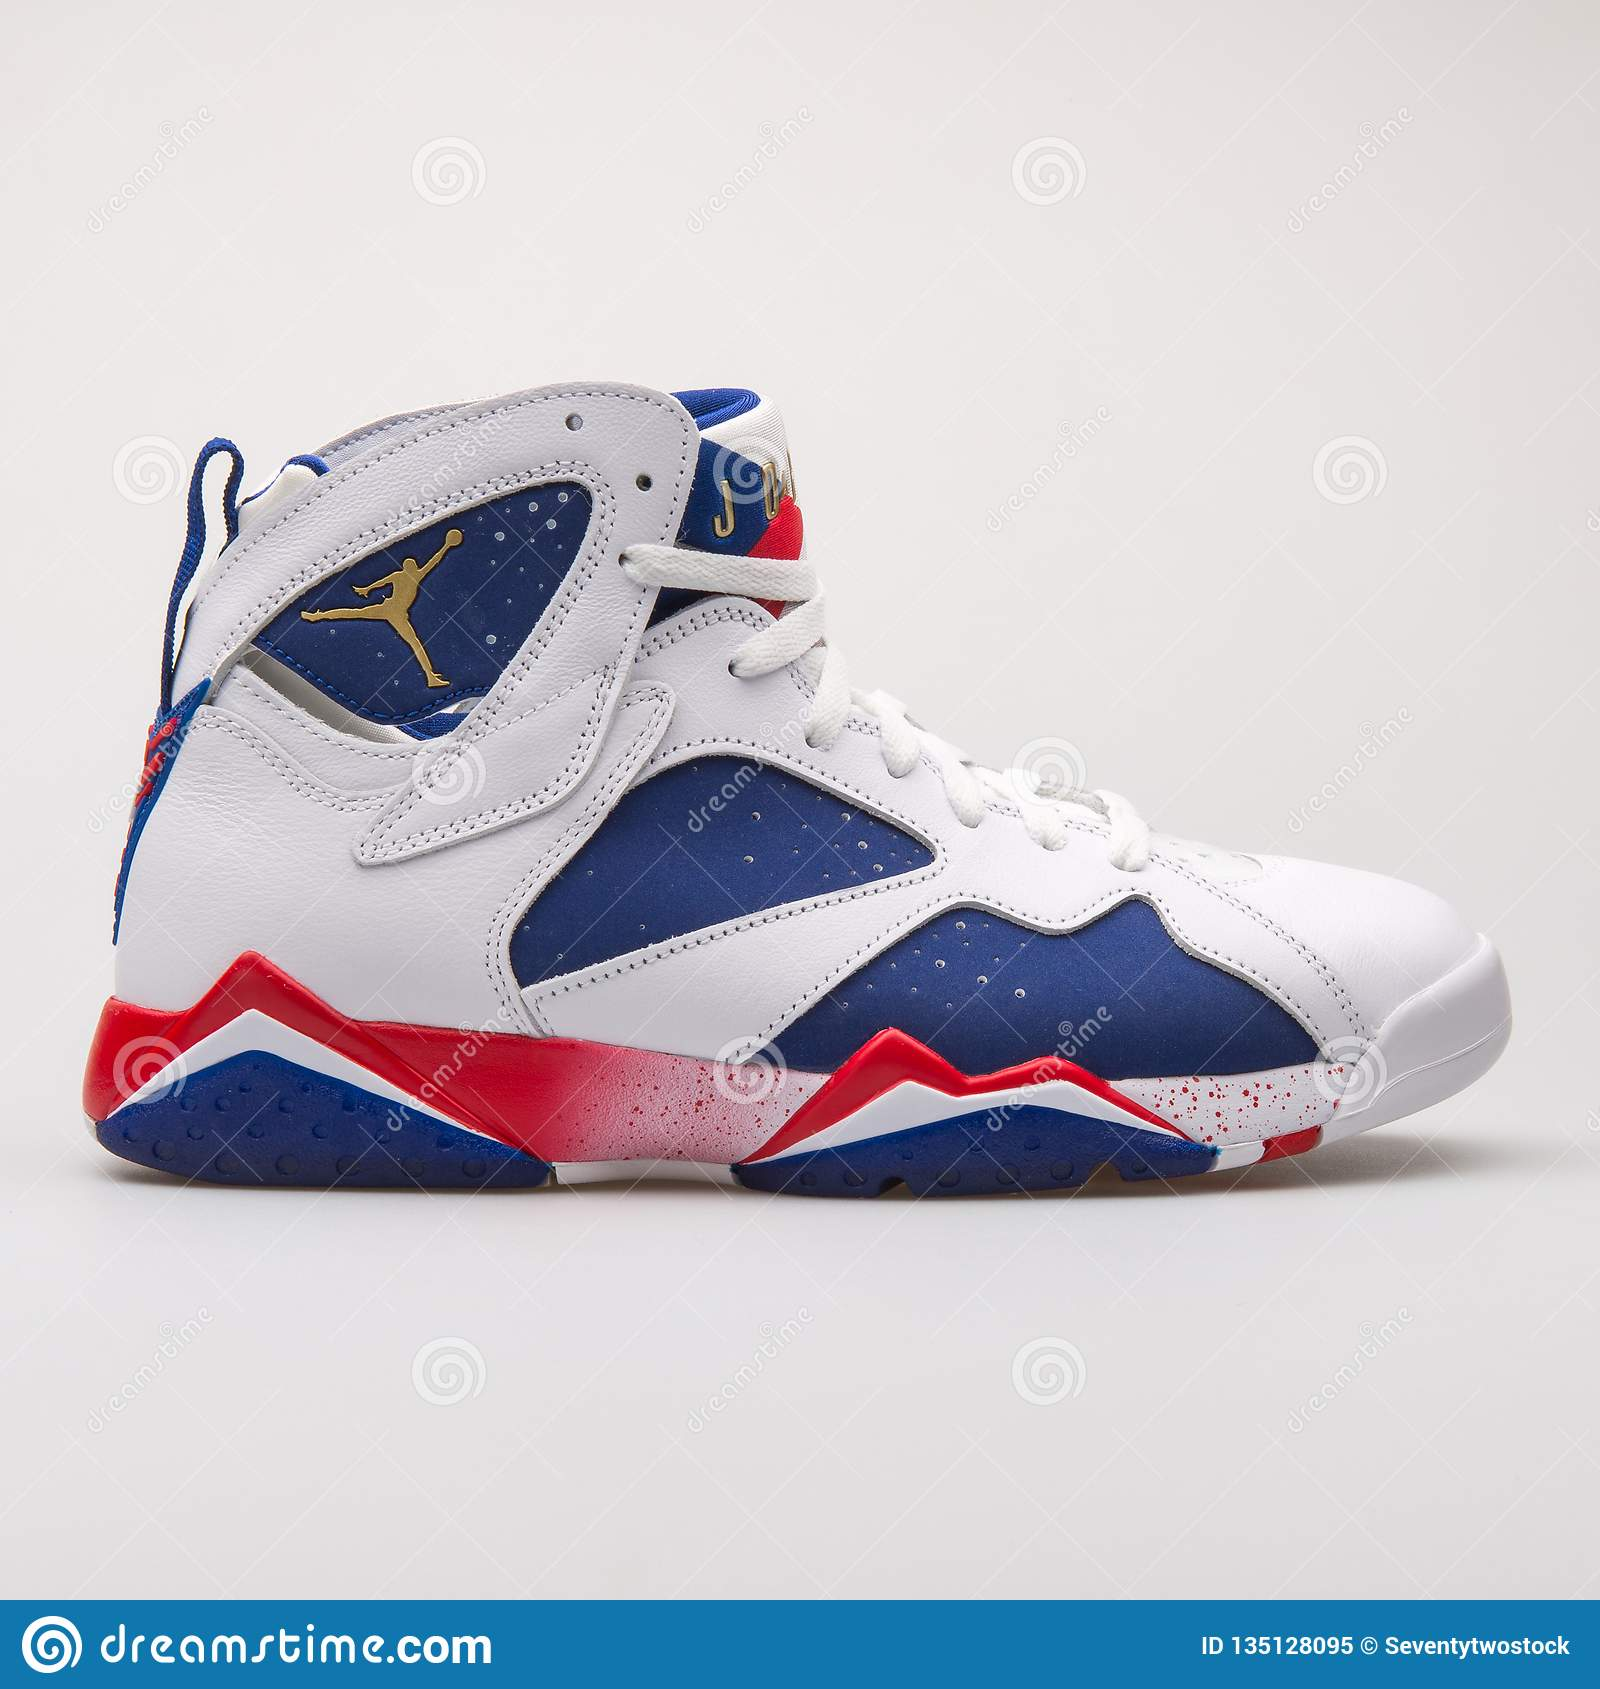 online retailer e08f1 88e07 Nike Air Jordan 7 Retro White, Blue And Red Sneaker ...